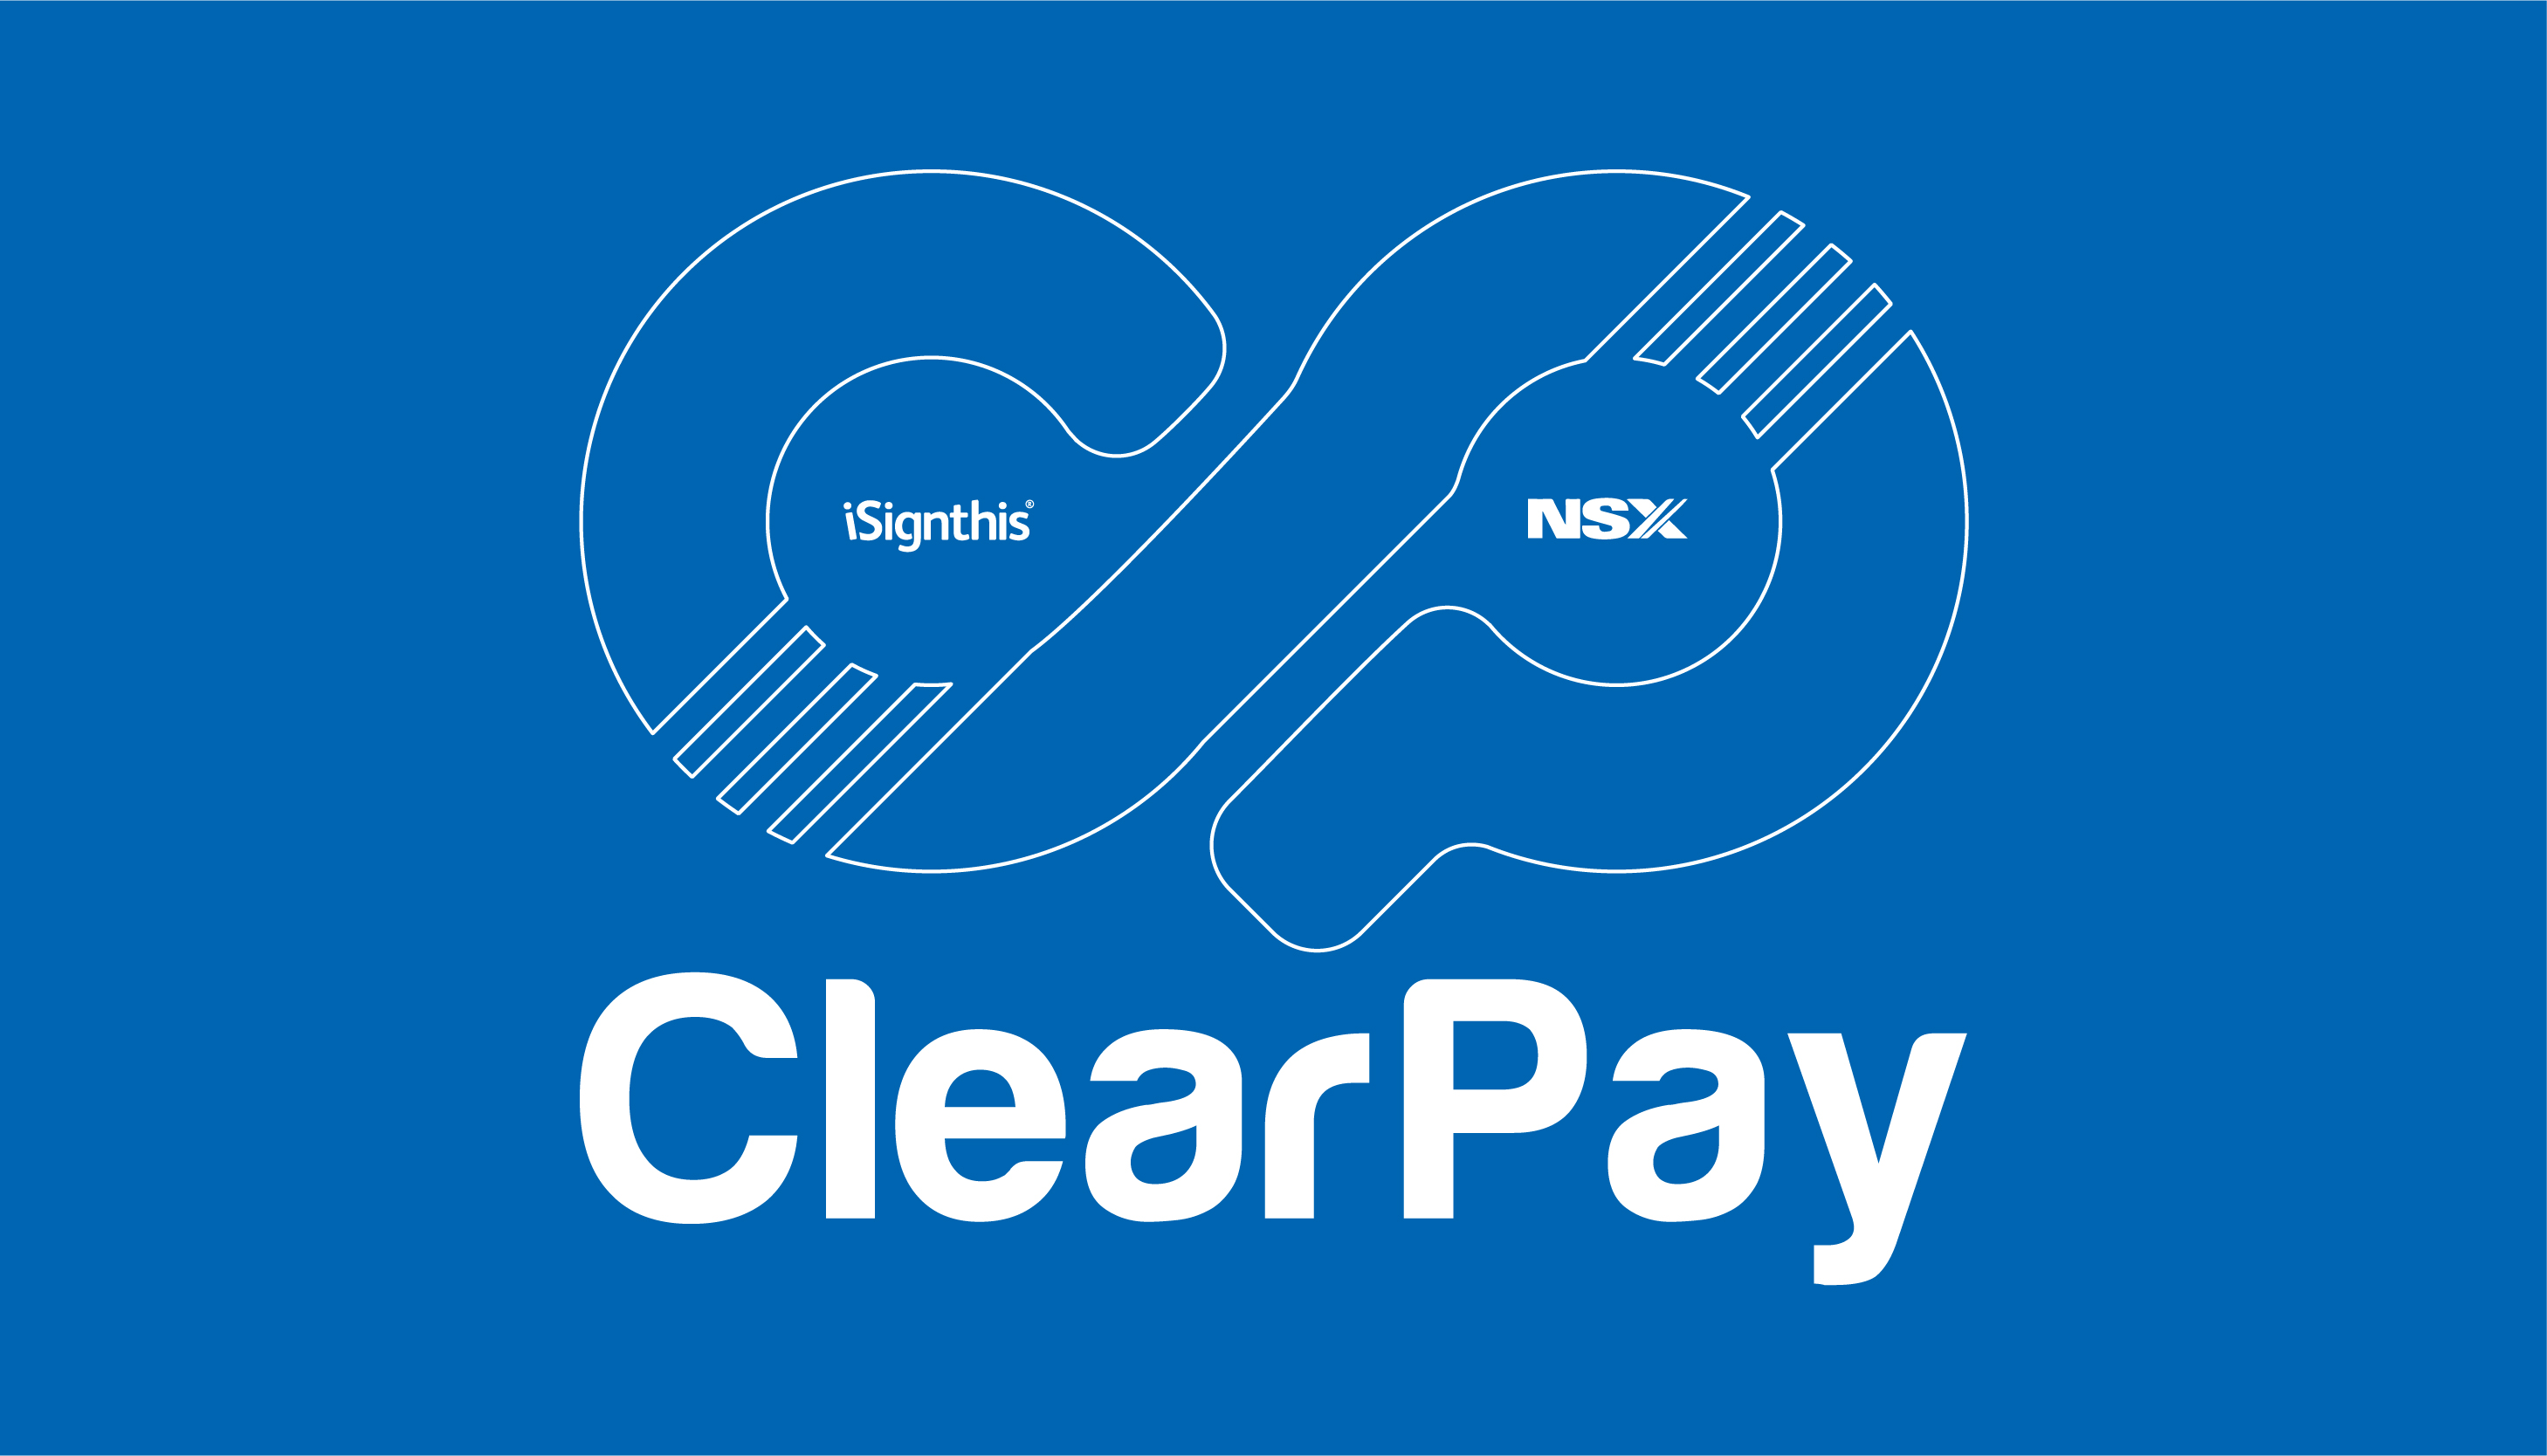 ISIGNTHIS WEB NEWS Clear pay 700x400px-03